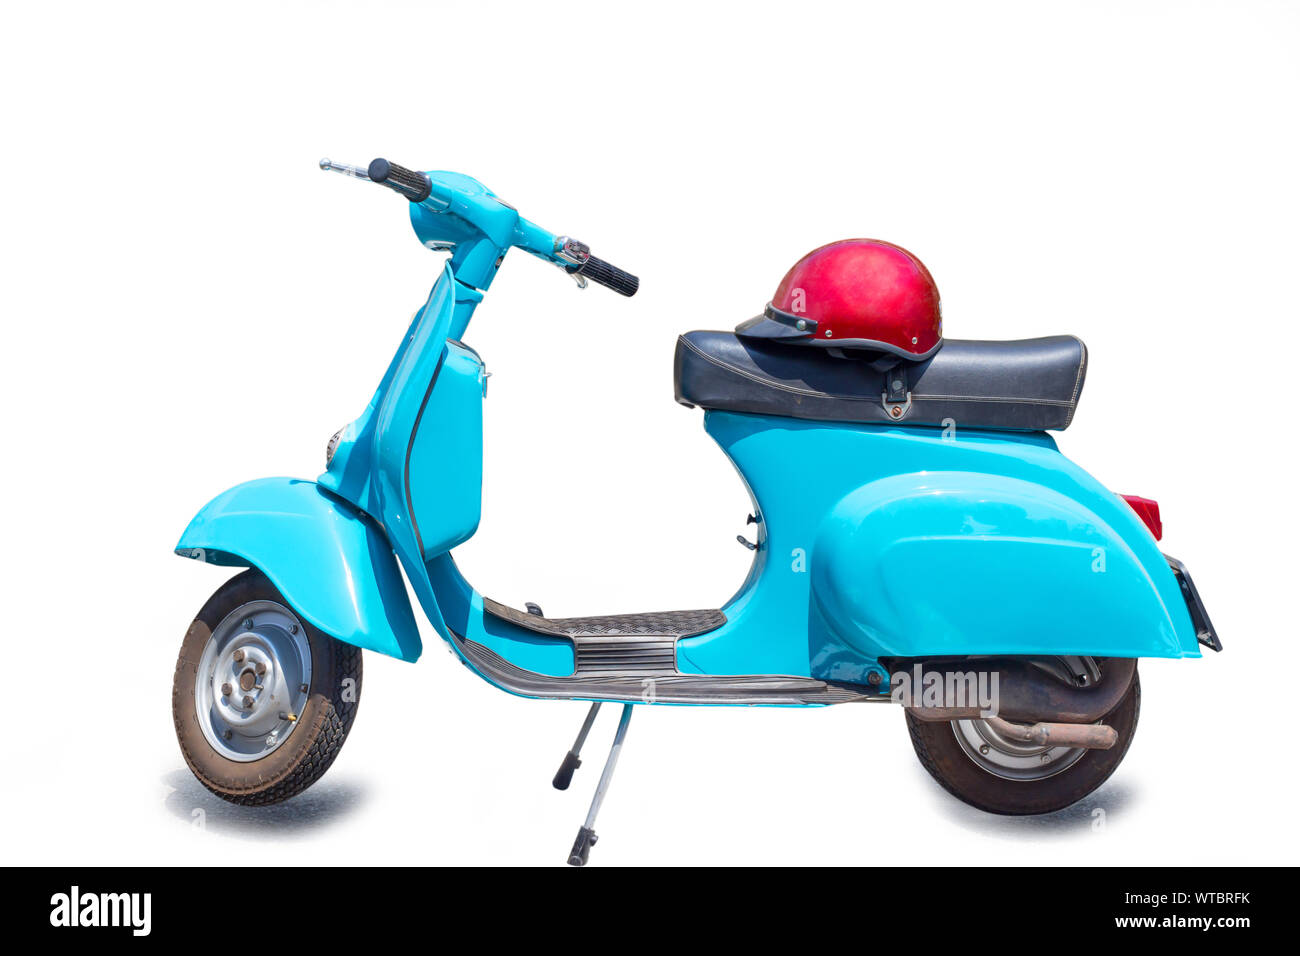 Retro scooter, Vintage scooter, retro motorcycle with red helmet isolated on white background with clipping path. Stock Photo